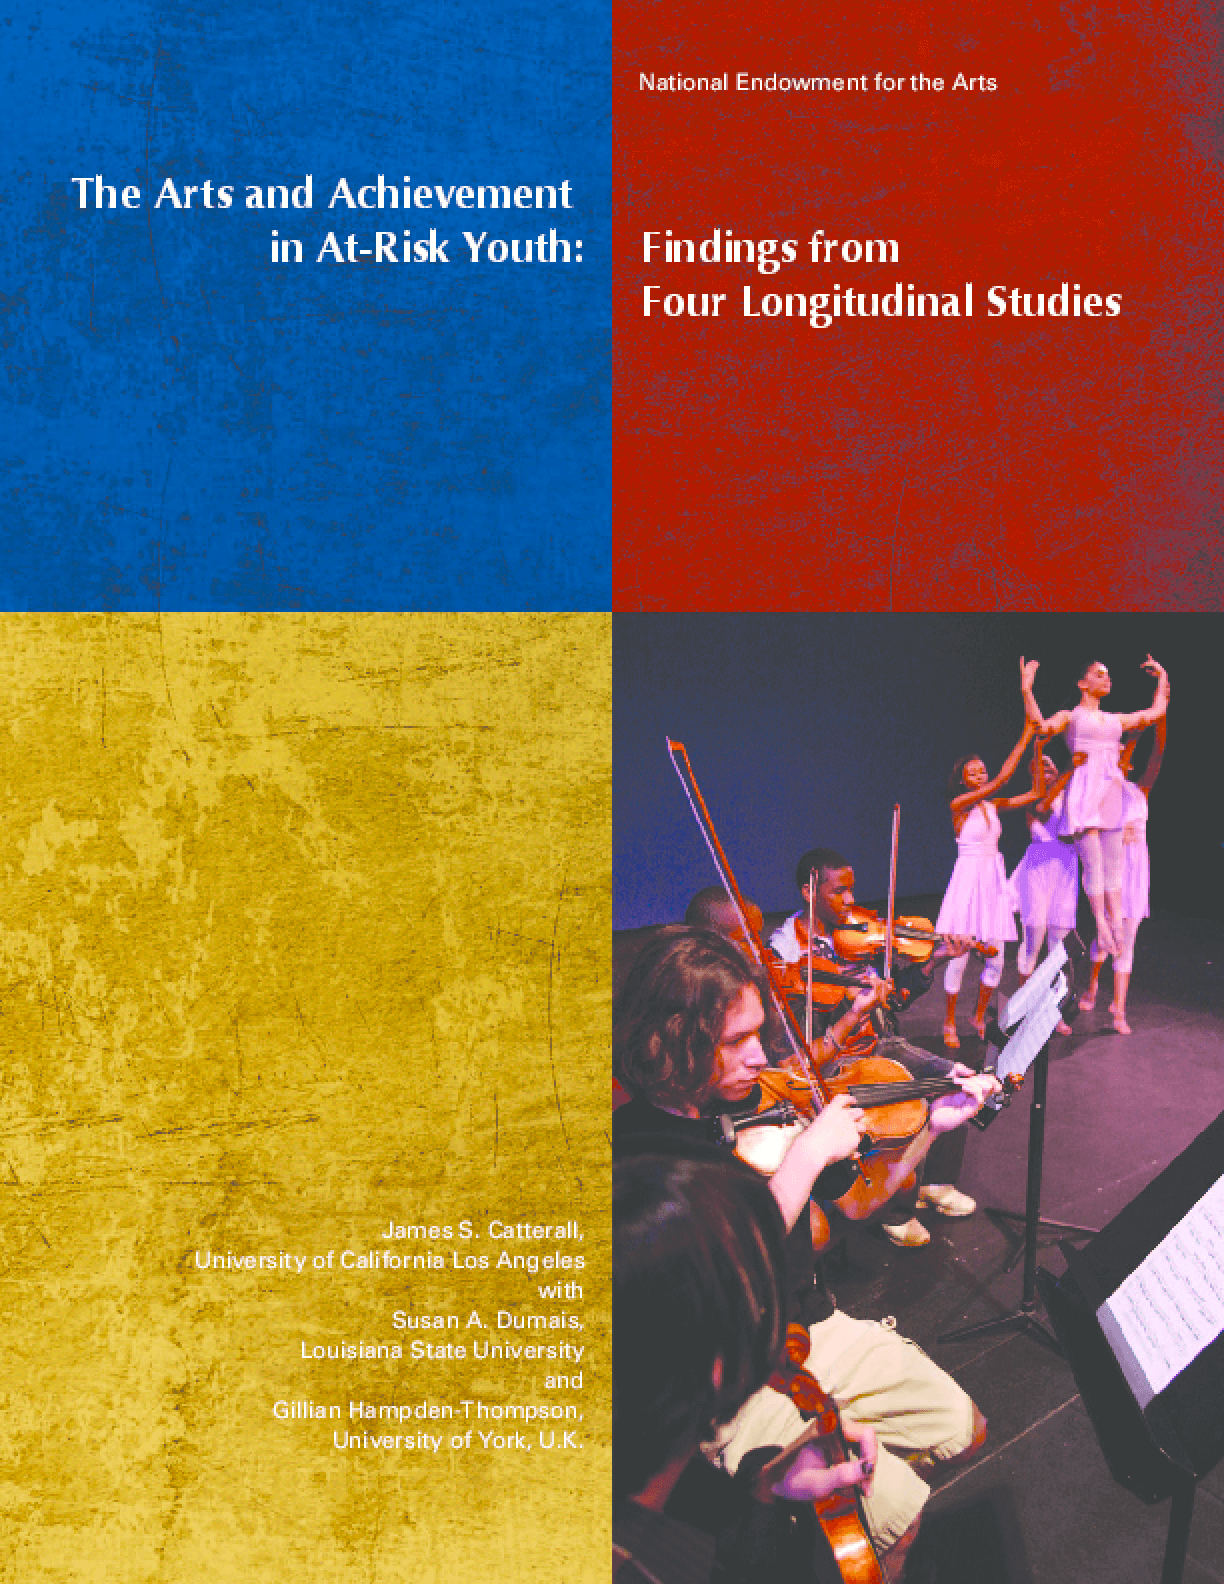 The Arts and Achievement in At-Risk Youth: Findings from Four Longitudinal Studies